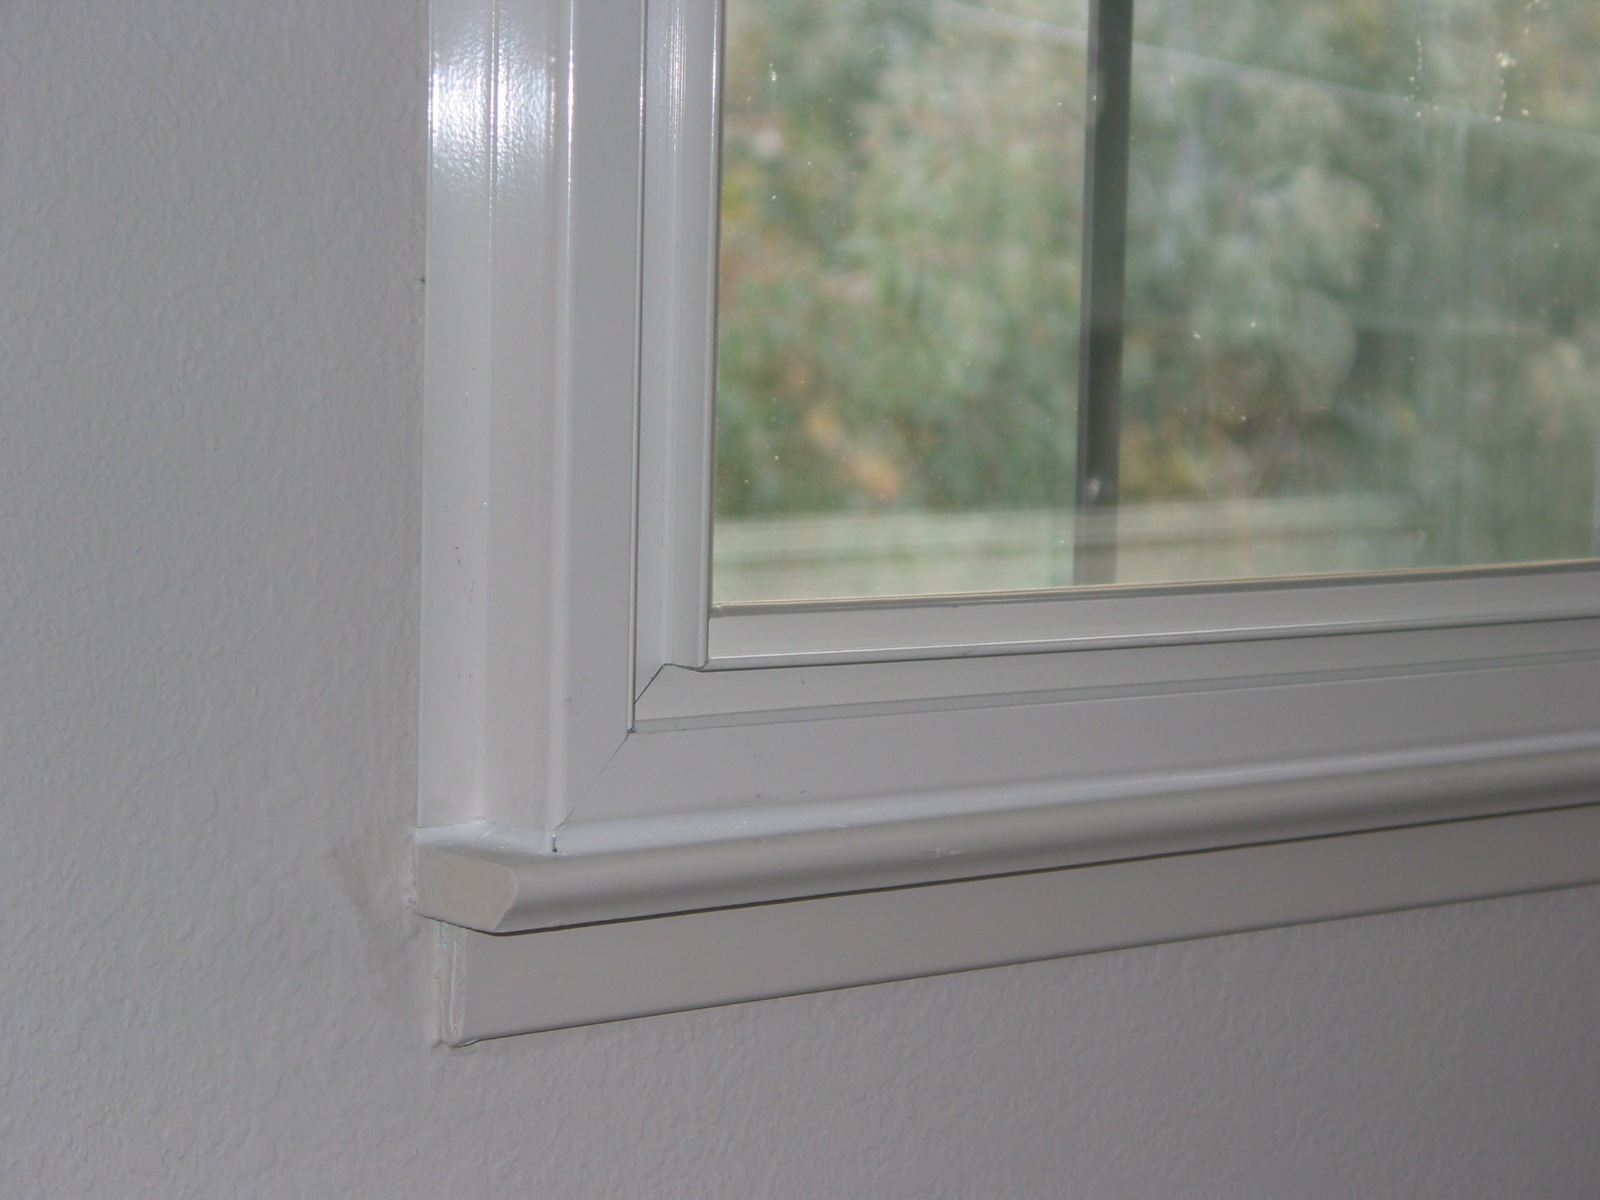 Soundproof Windows Not Only Reduce Noise But Look Good As